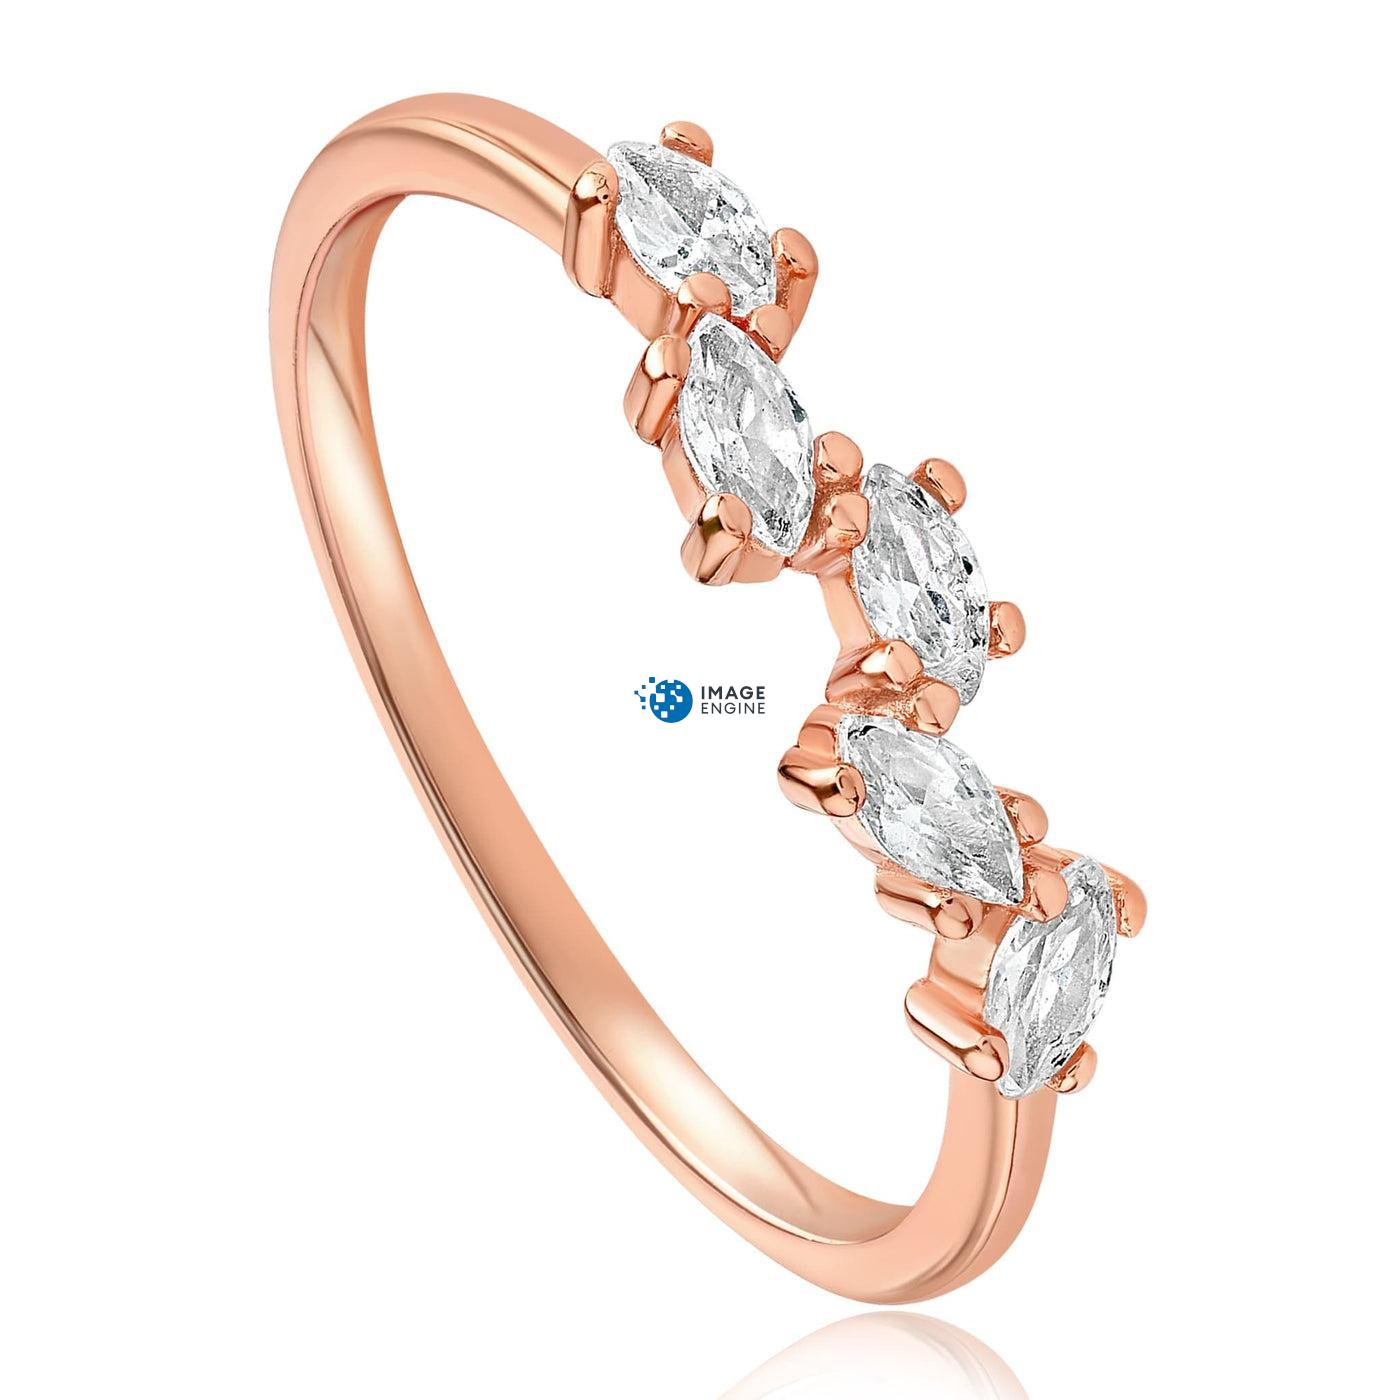 Genna Round Cut Ring - Three Quarter View - 18K Rose Gold Vermeil